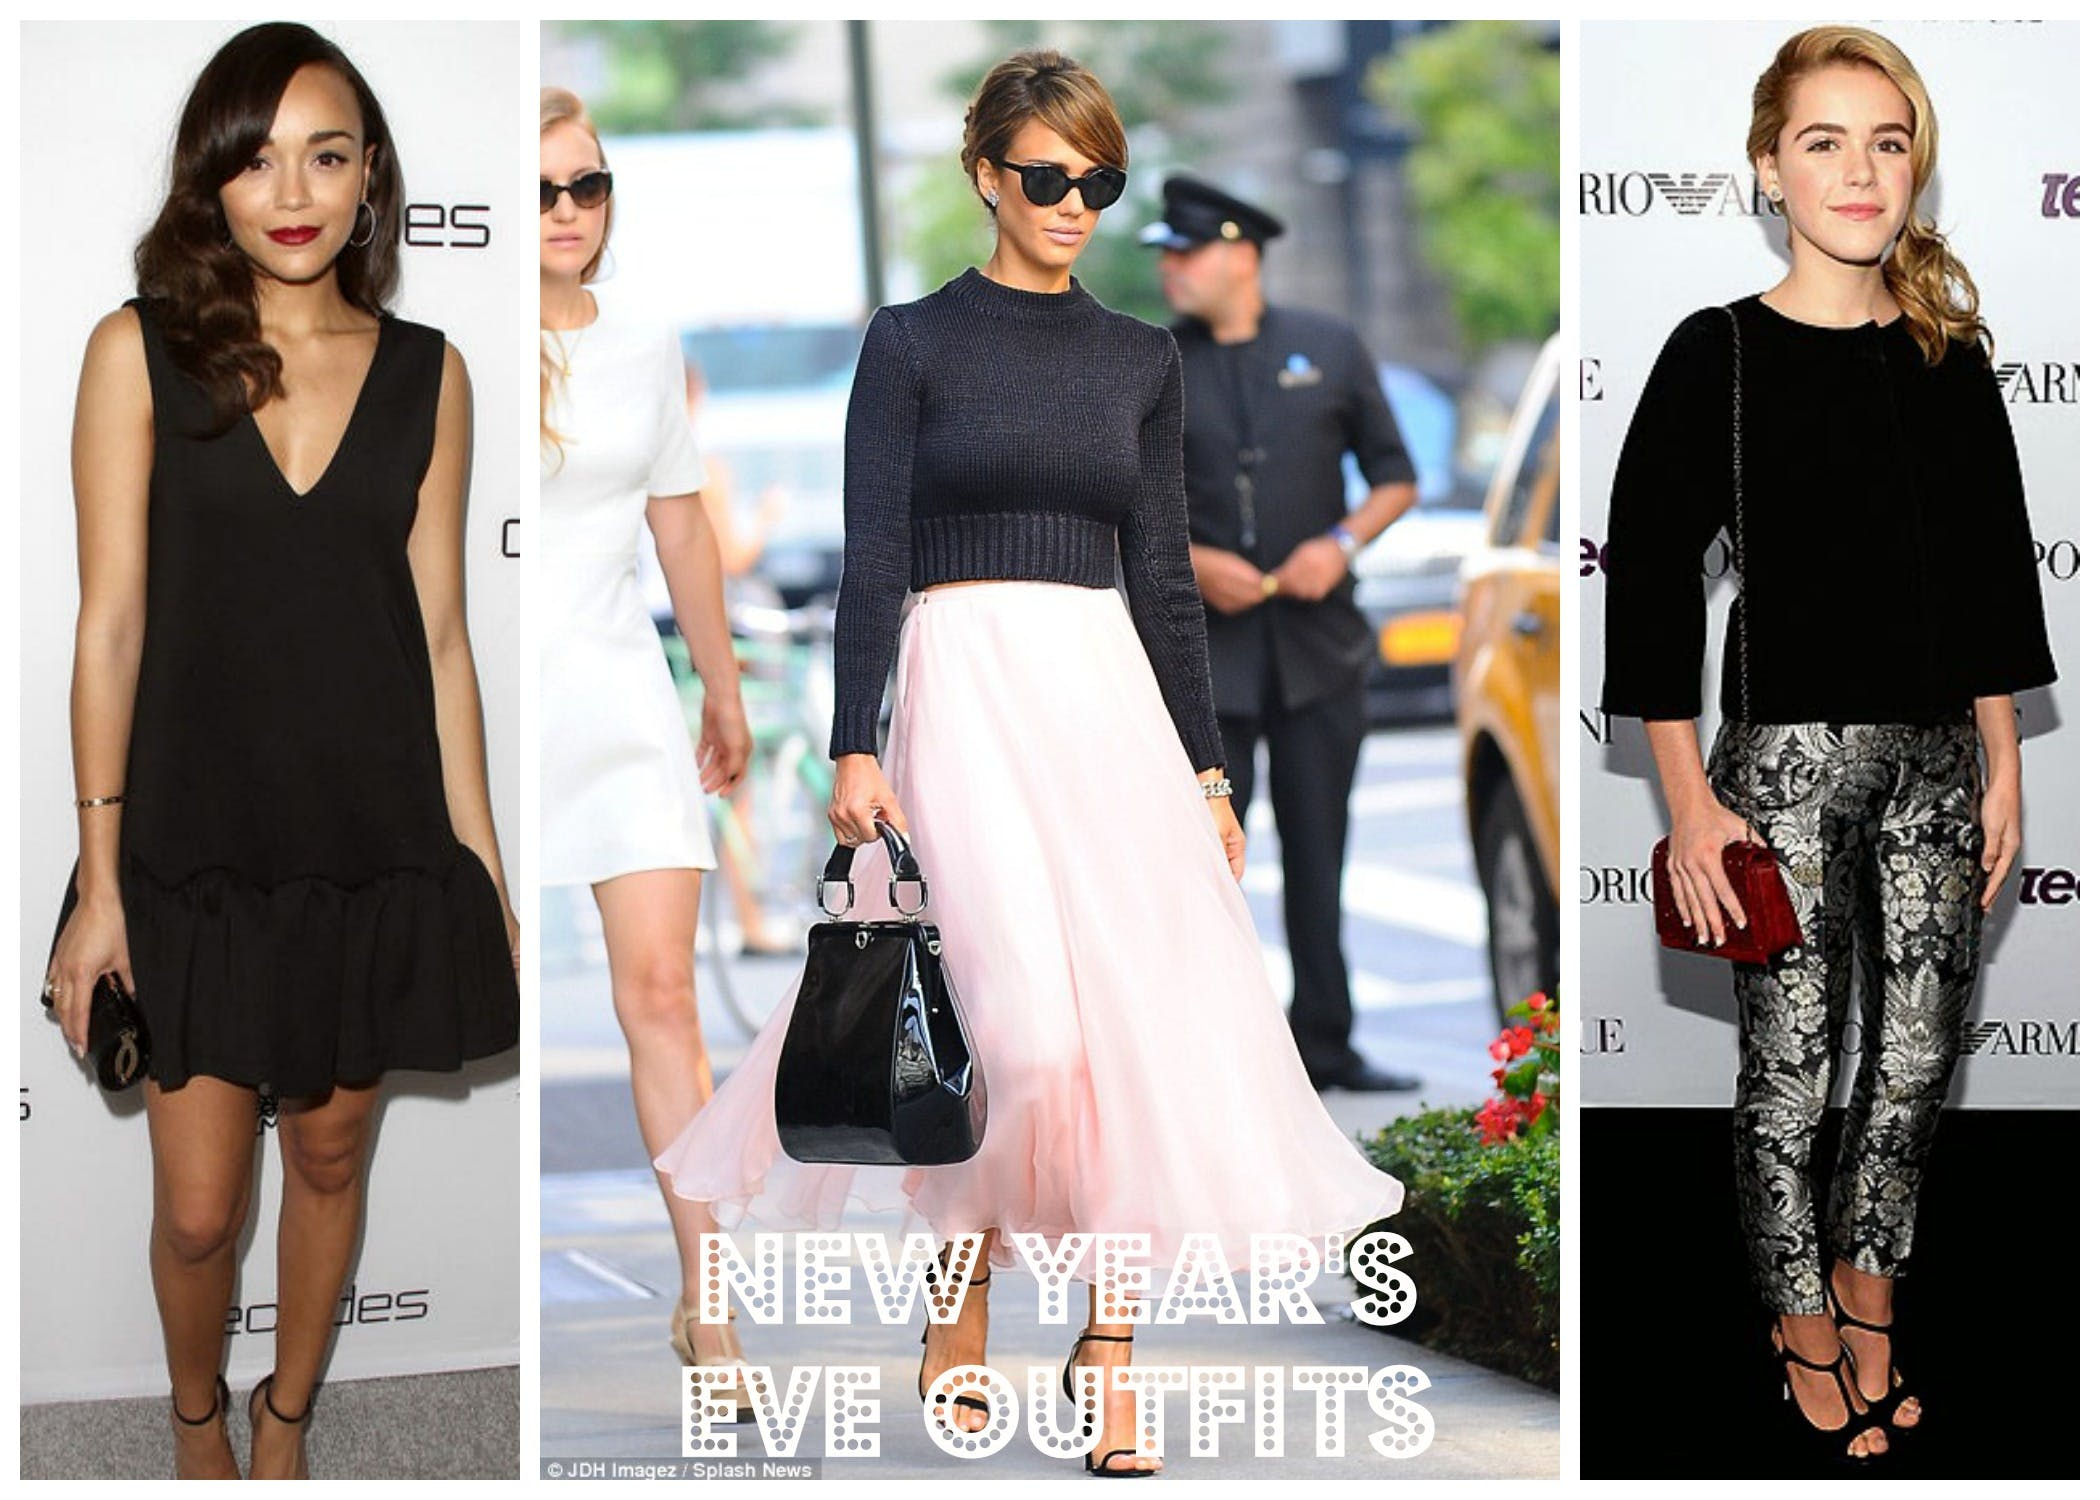 New Year's Eve outfit ideas inspired by celebrities